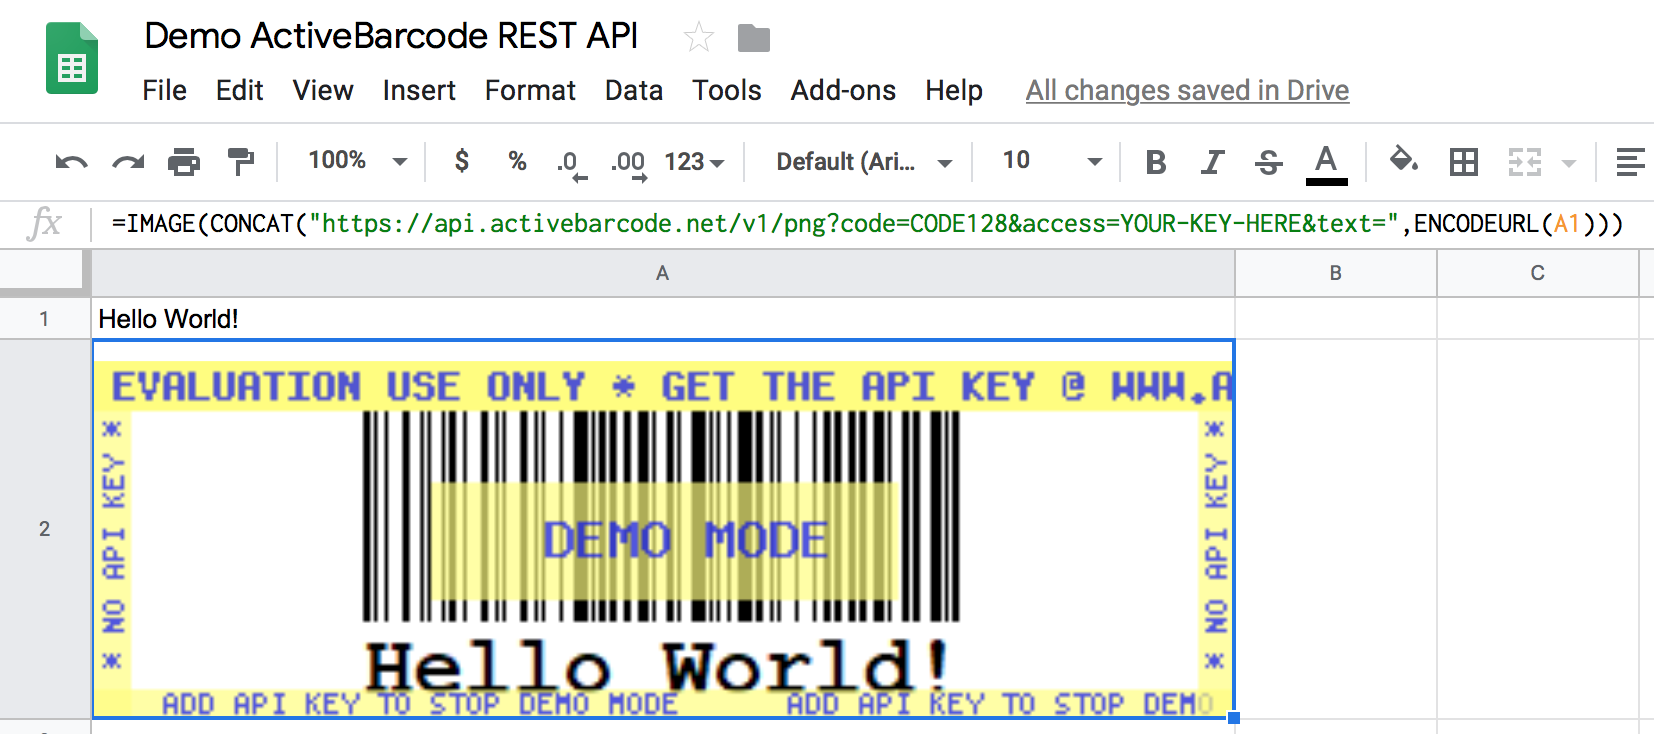 Demo-ActiveBarcode-REST-API-Google-Sheets